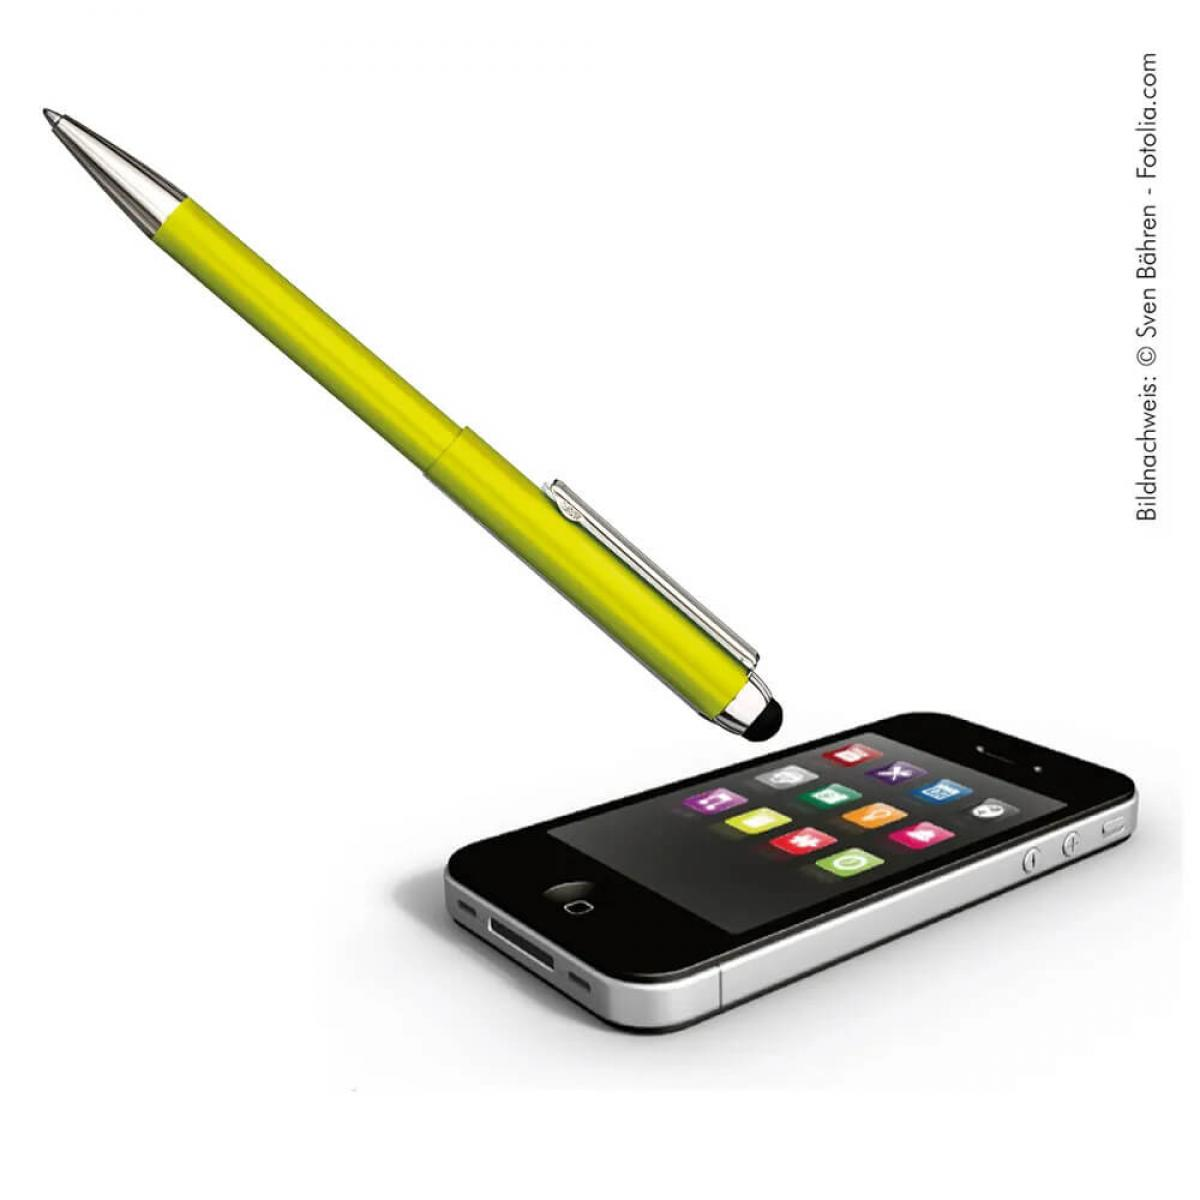 HERI STAMP & TOUCH Pen 3 in 1